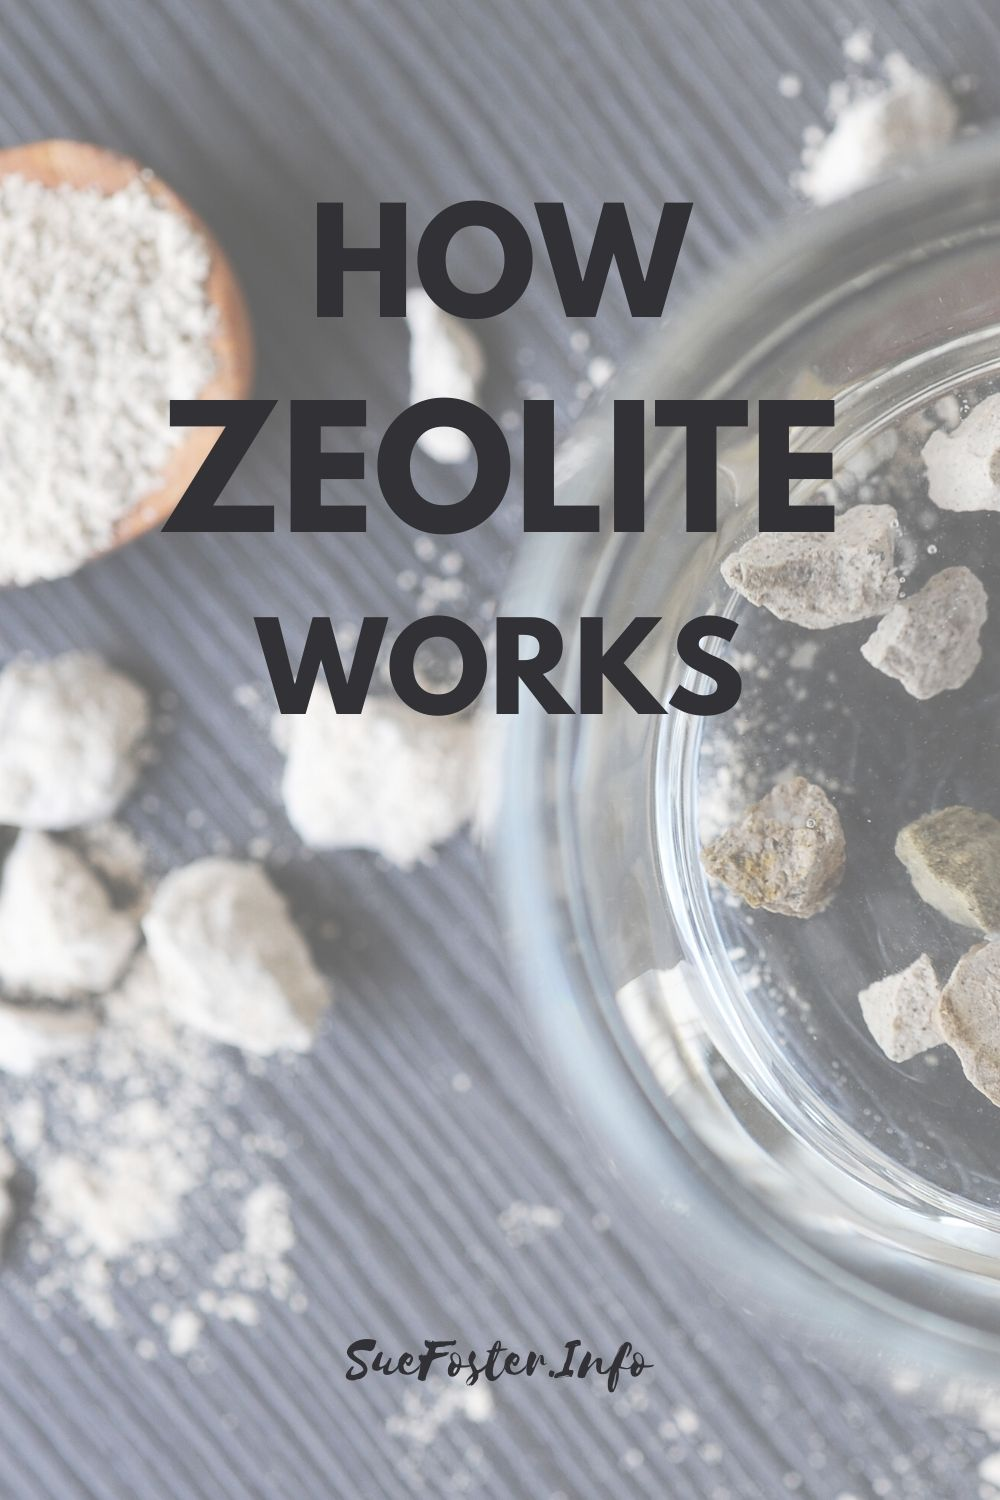 Reported benefits of using Zeolite for detox include higher energy, mental clarity and an overall improved sense of well being.